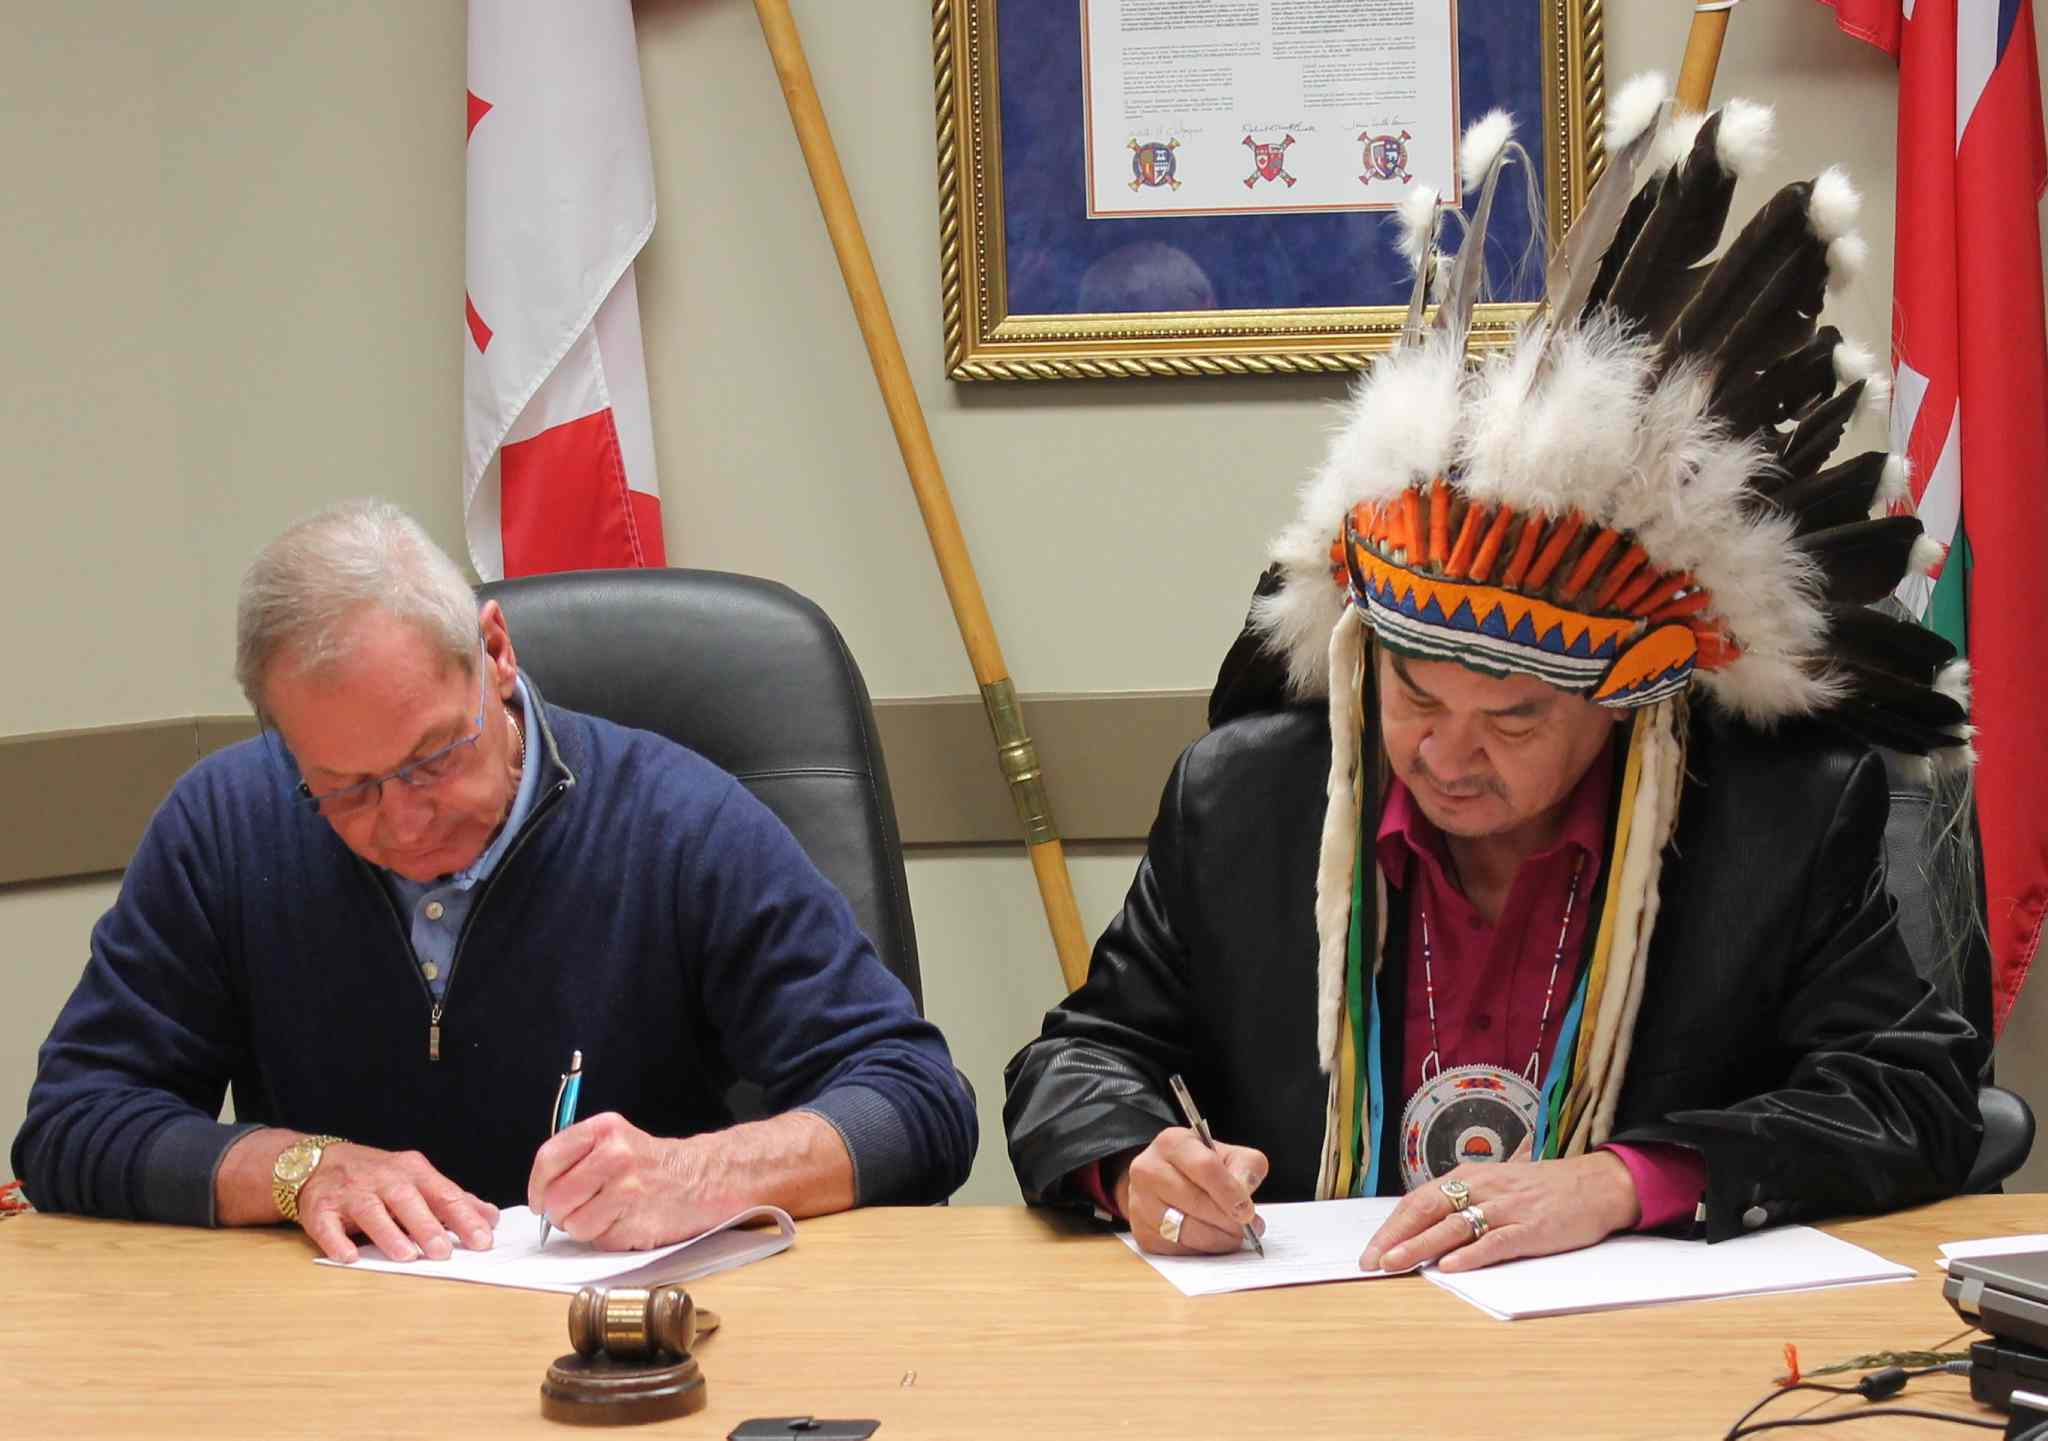 Mayor Wilfred Taillieu, RM of Headingley, and Chief Morris Swan Shannacappo, Rolling River First Nation, sign a municipal development and services agreement.